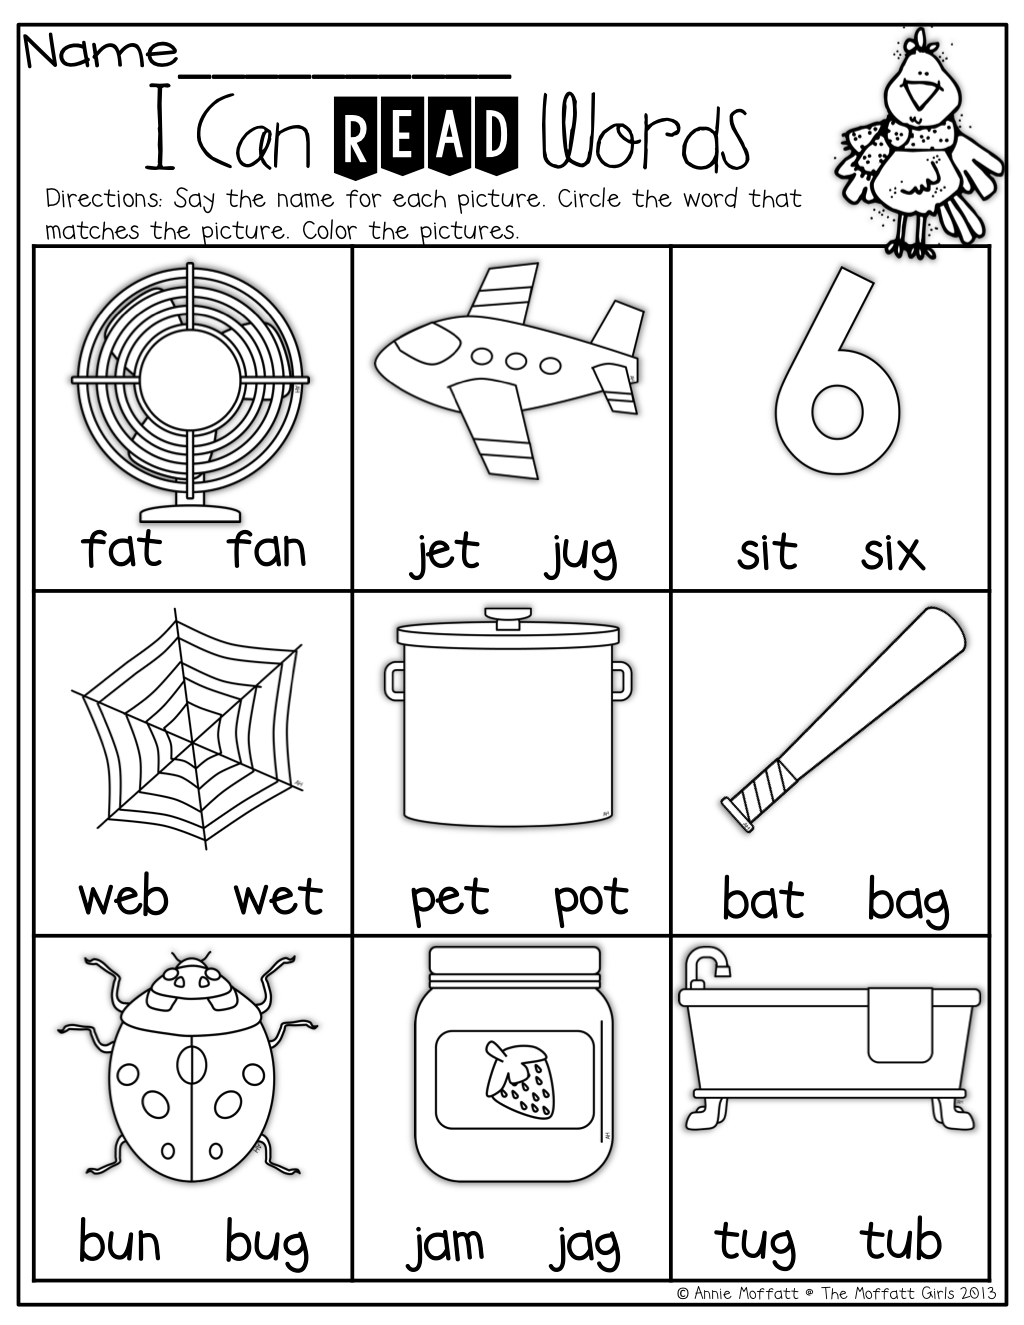 I Can Read Words! | Slp | Kindergarten Worksheets, Preschool